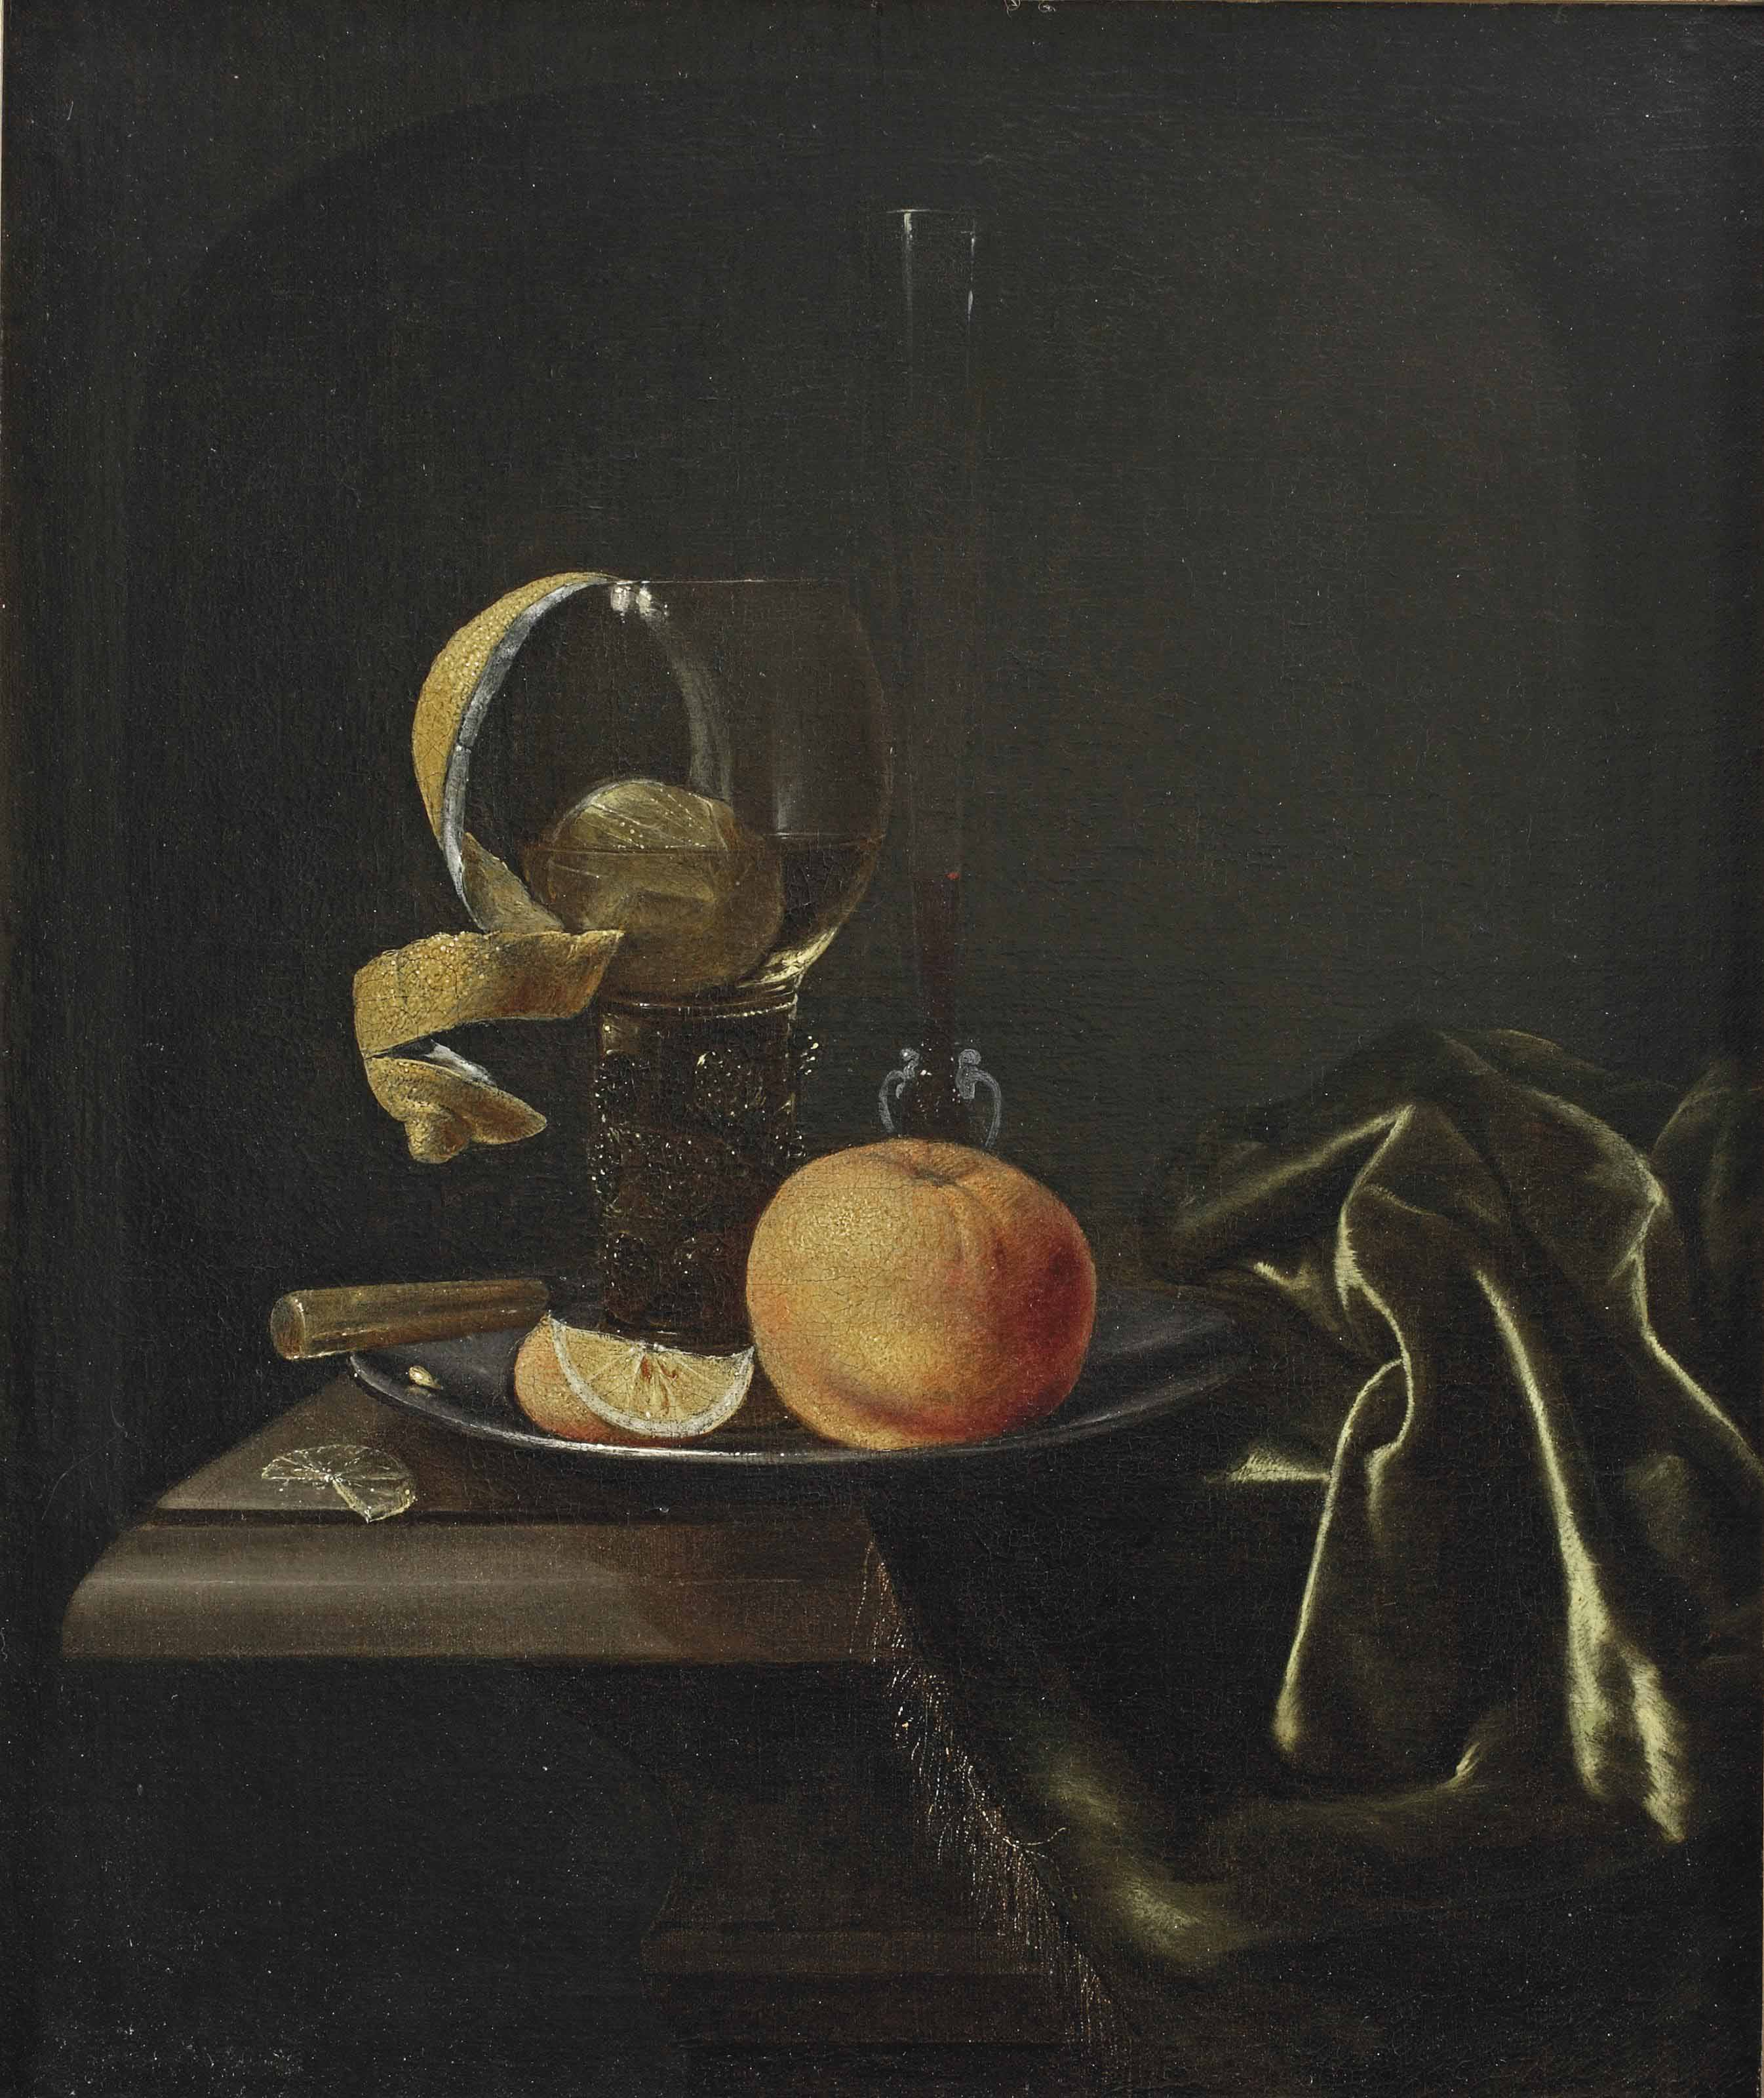 An orange, a peeled lemon and a glass on a pewter dish, all on a partially draped table